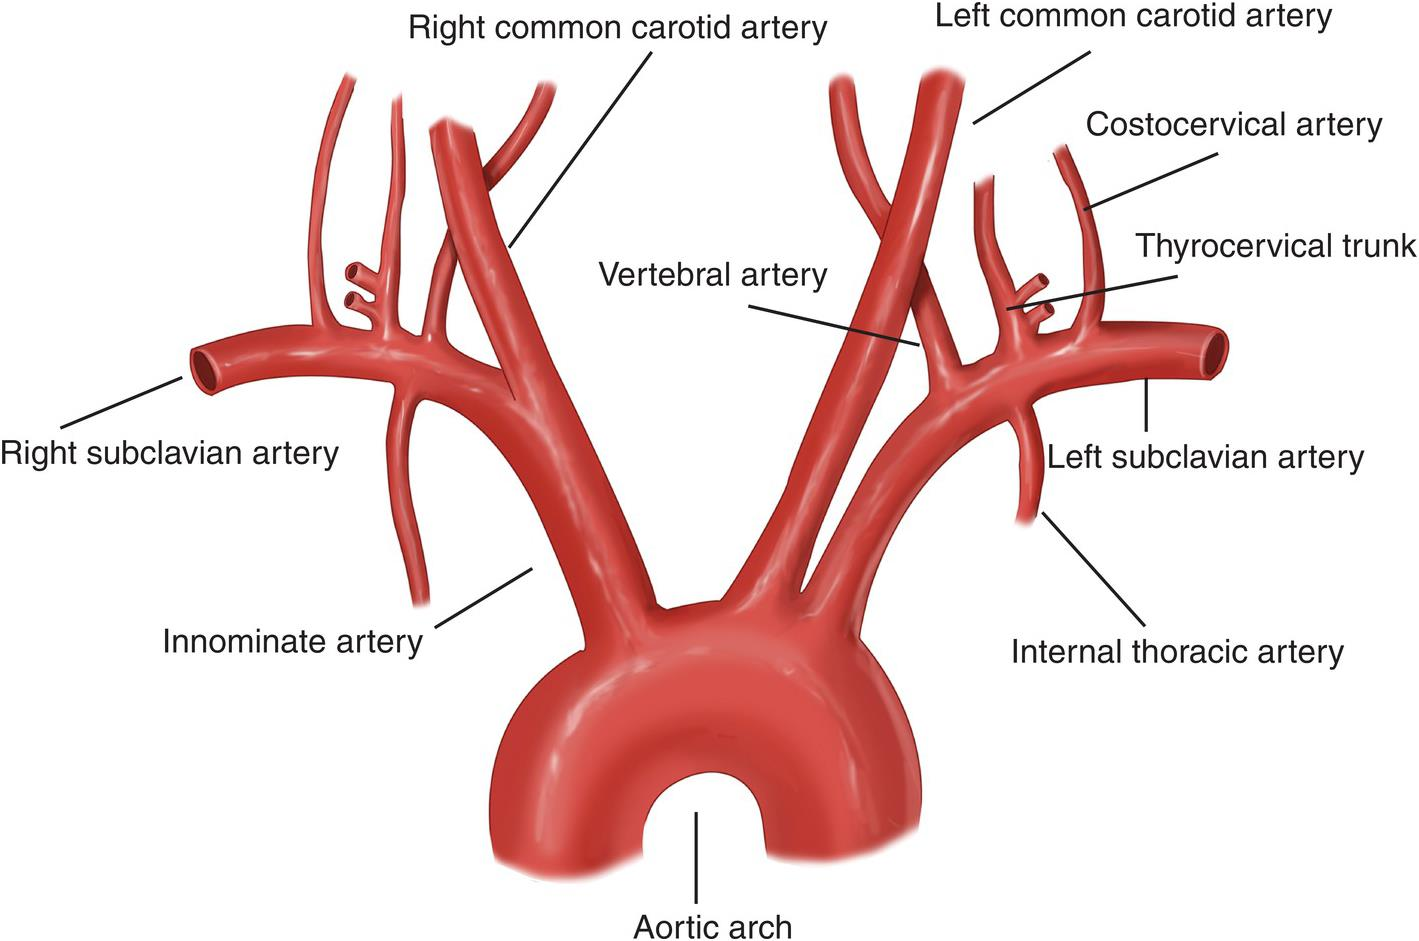 https://upload.orthobullets.com/topic/12302/images/subclavian_artery_anatomy.jpg